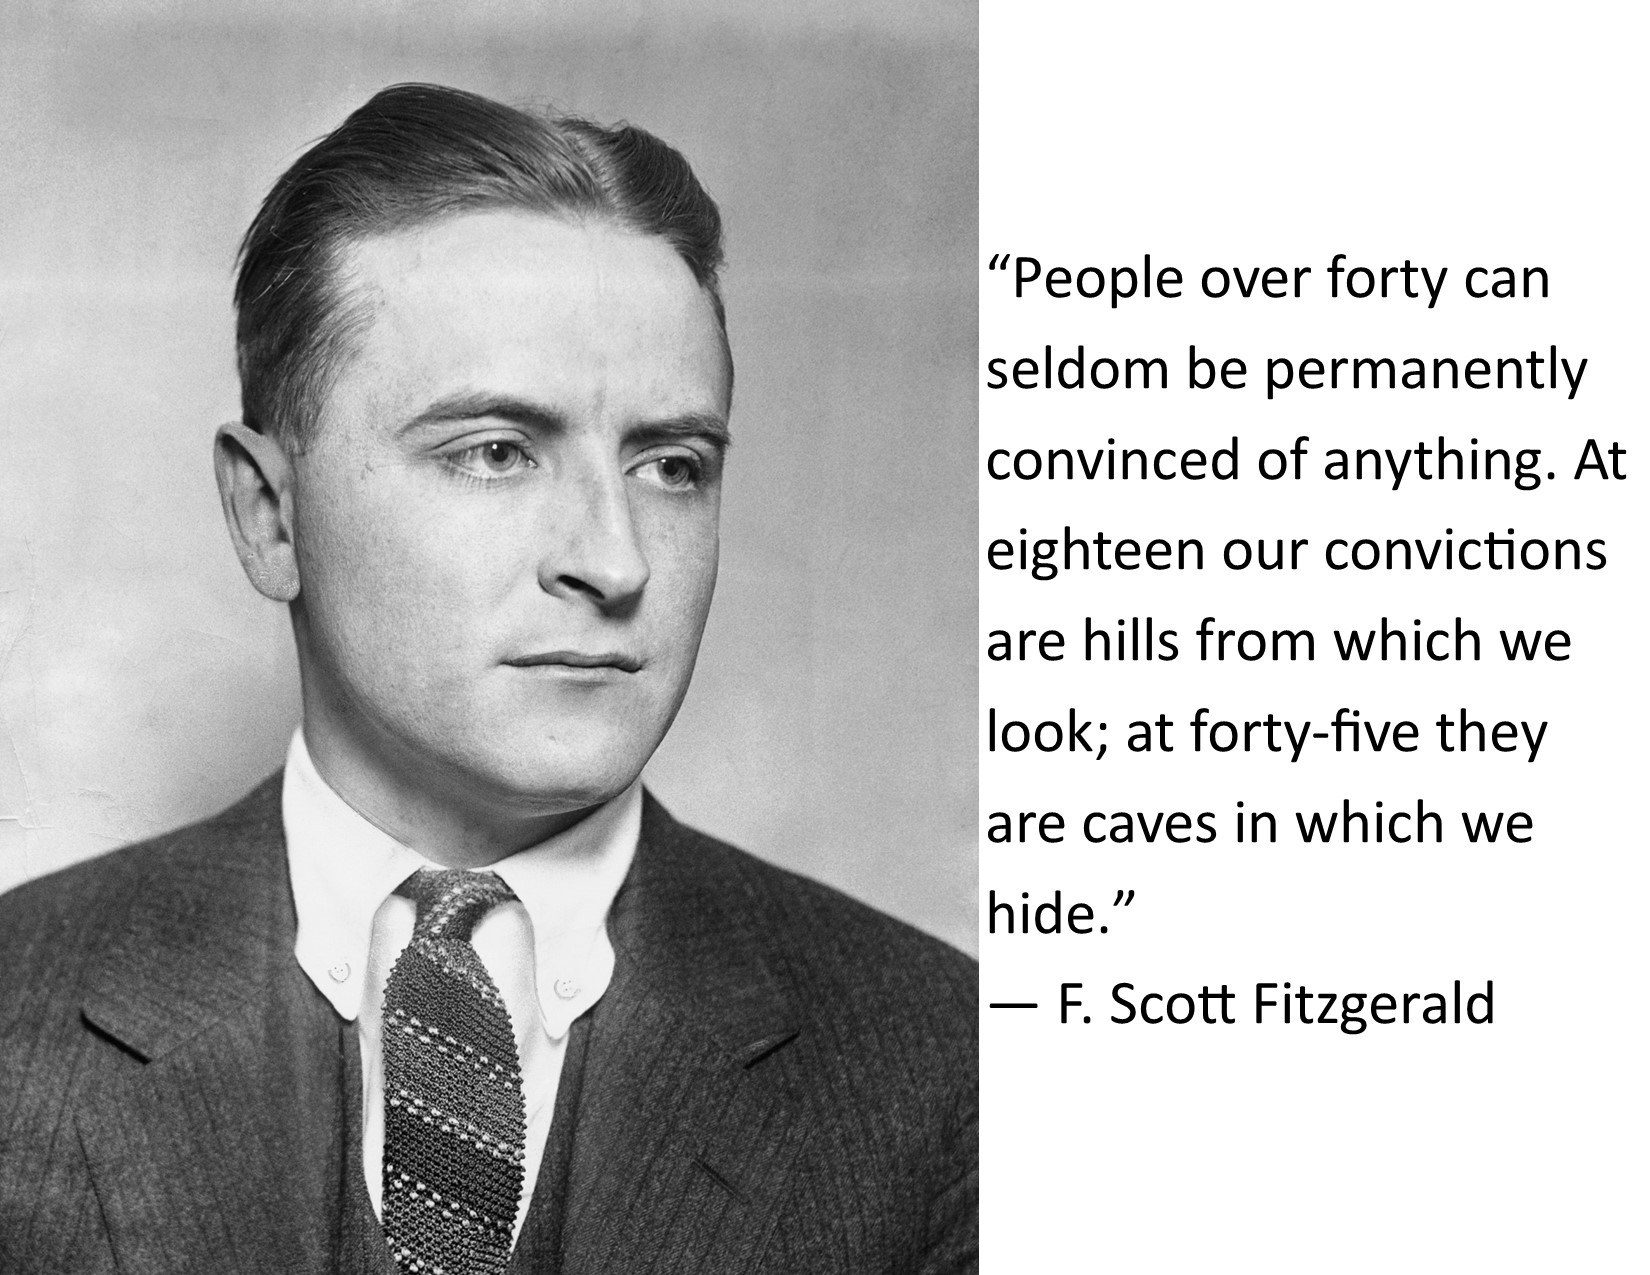 """People over forty can seldom be permanently convinced of anything. At eighteen our convictions are hills from which we look; at forty-five they are caves in which we hide."" ― F. Scott Fitzgerald [1650×1275]"